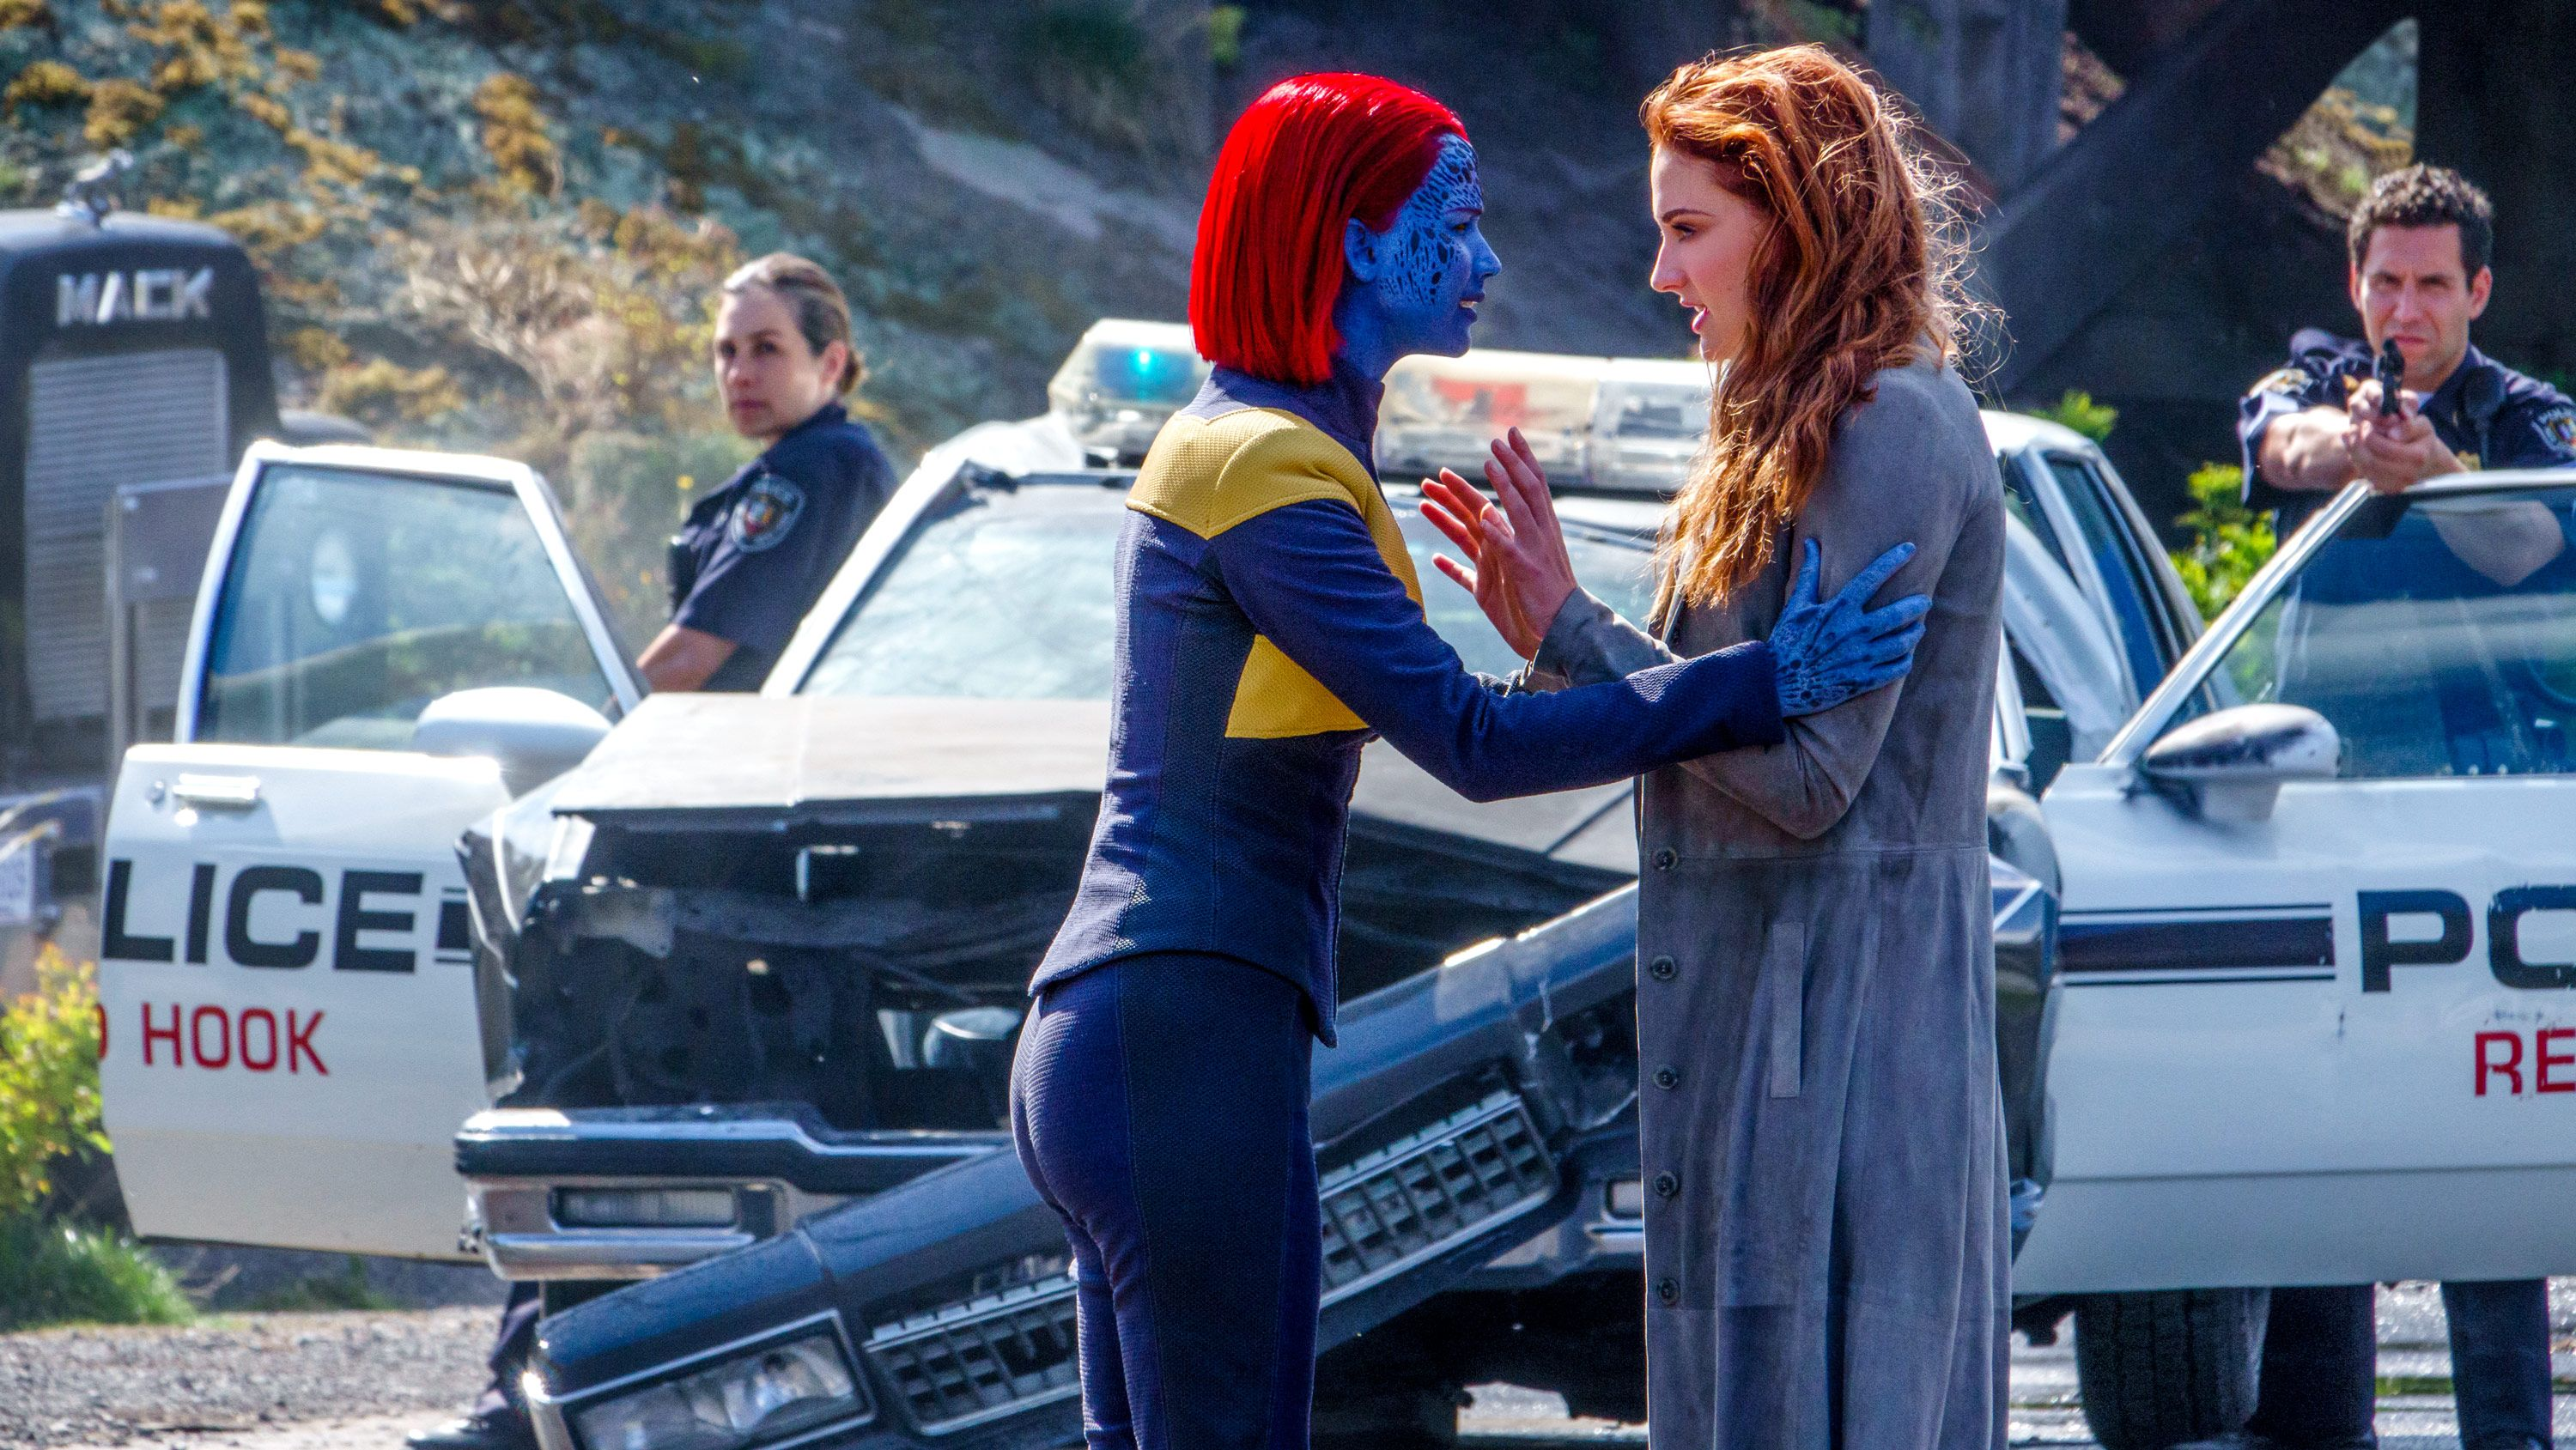 X Men Producer Wanted To Make Female X Men Movie Before Wonder Woman